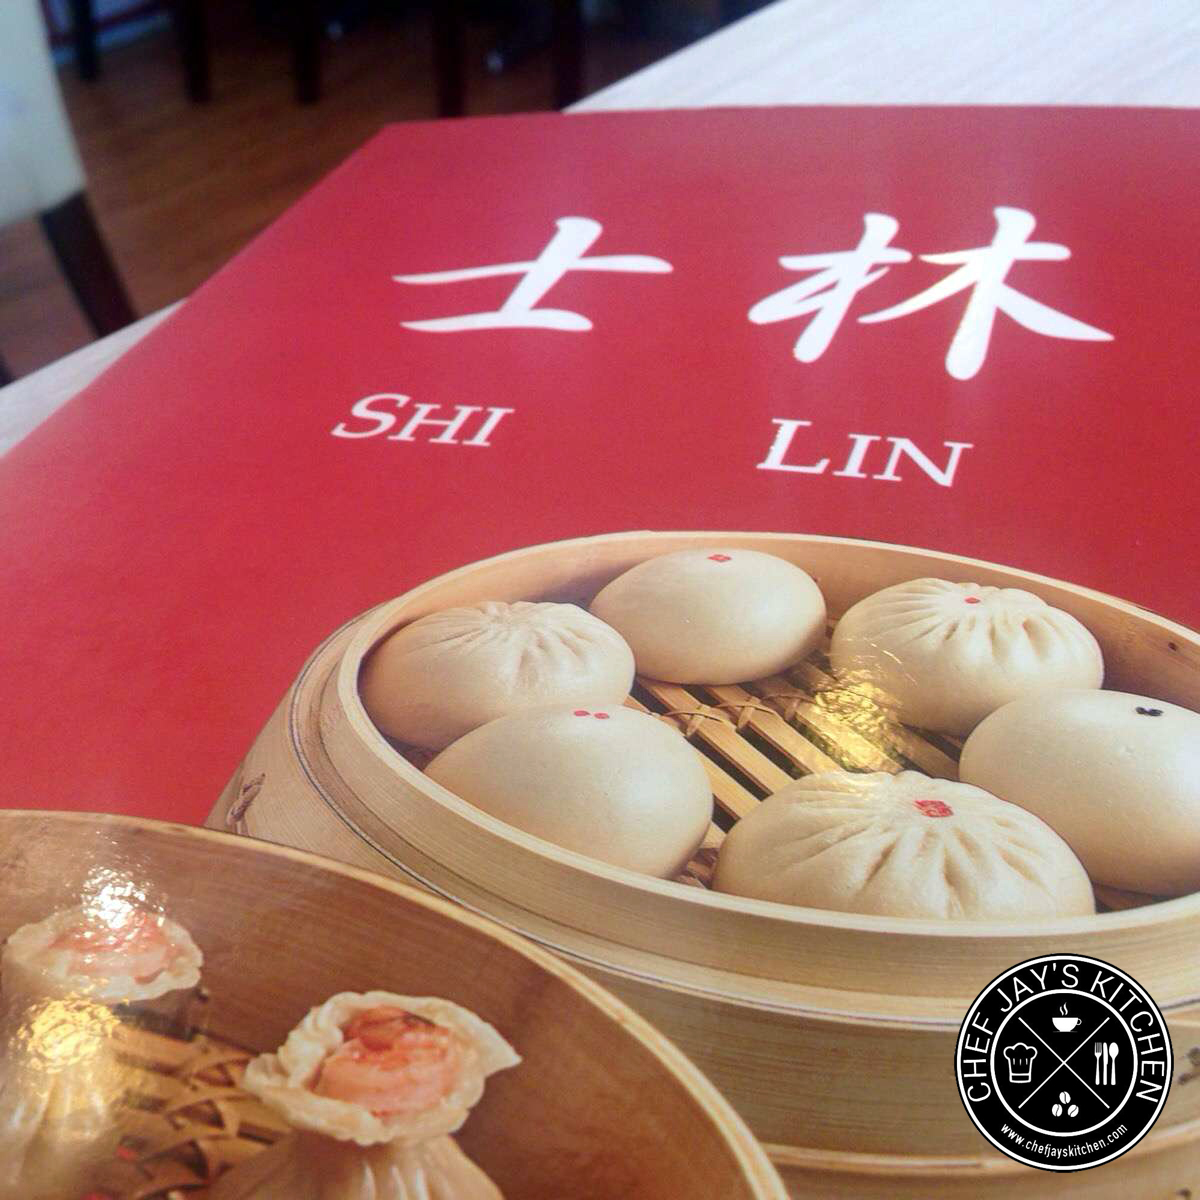 a binondo lunch at shi lin, lucky china town mall | chef jay's kitchen